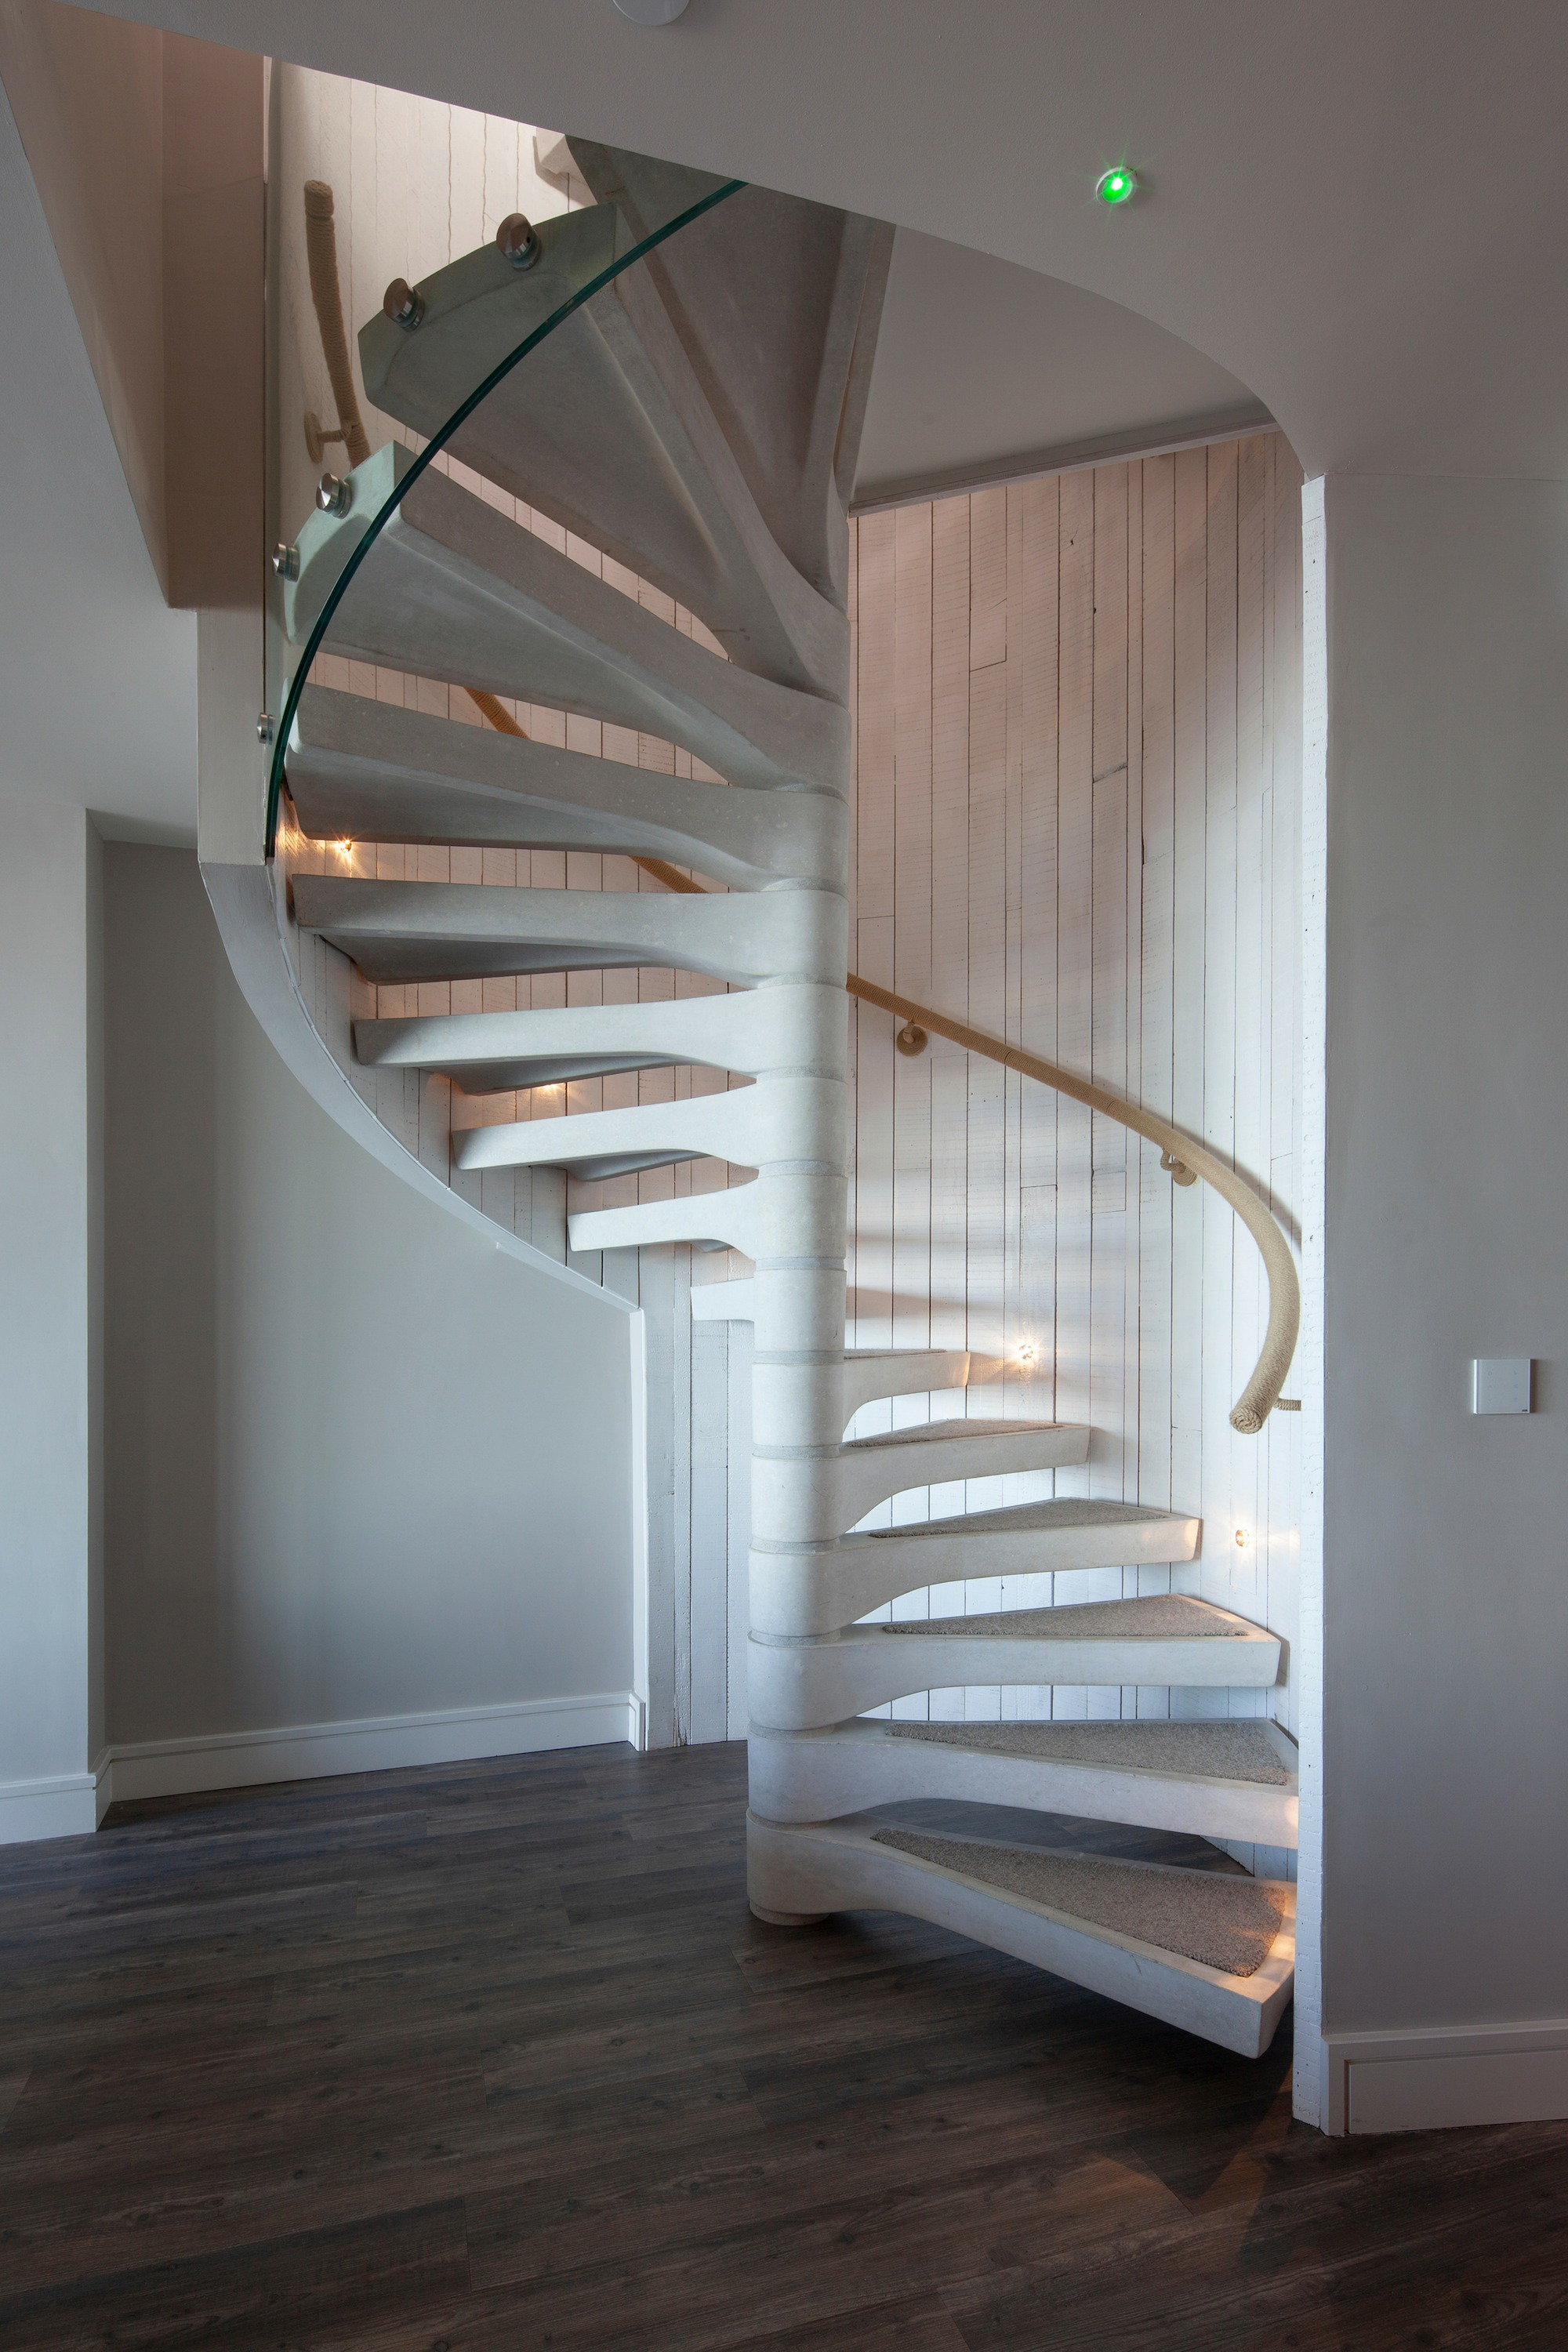 Picture of: Spiral Staircase Manufacturers Bespoke Staircases